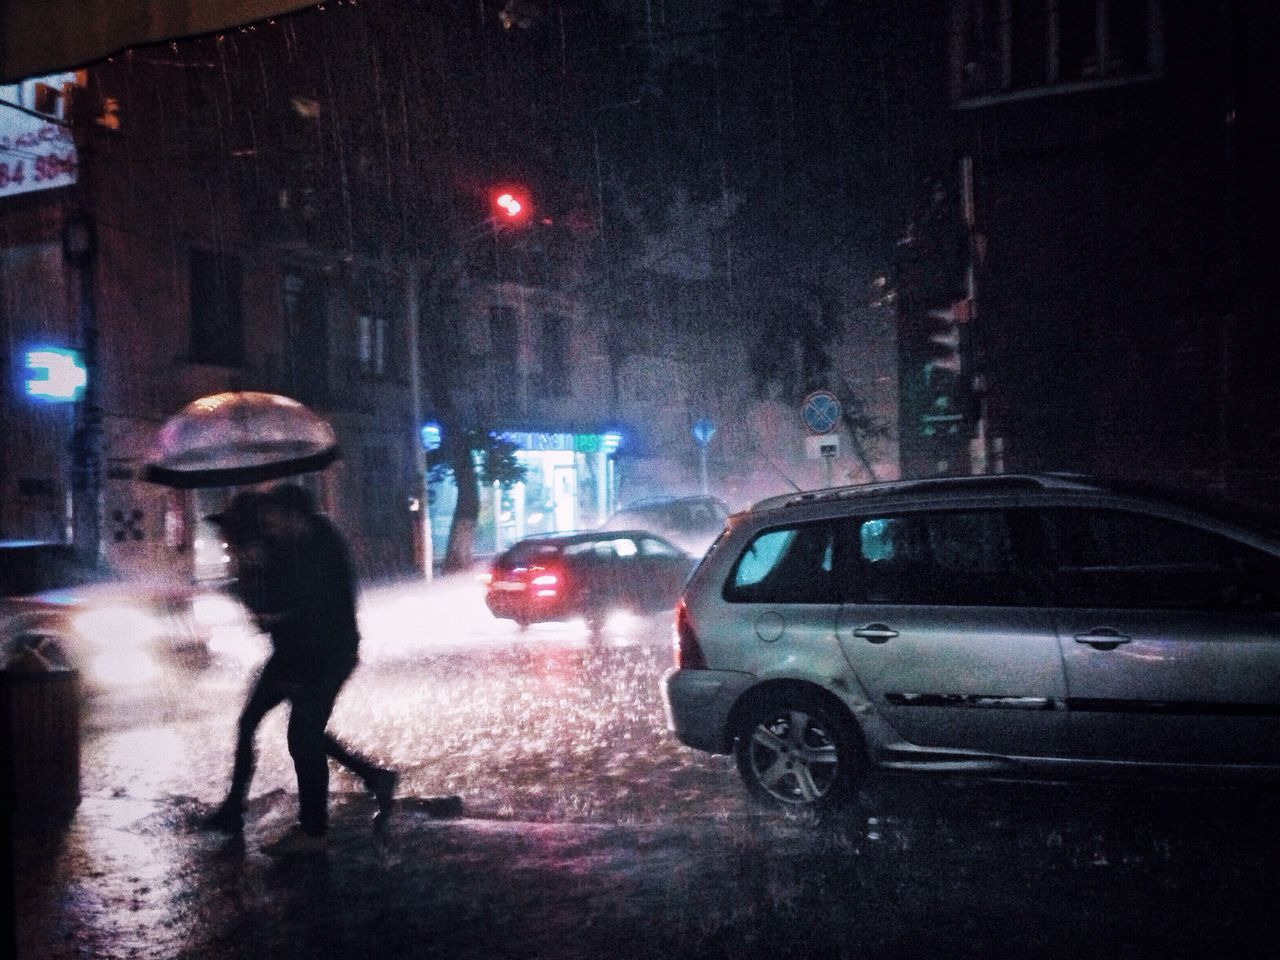 Rain Night Car Weather Wet Street Rainy Season City City Life Protection Illuminated Walking Real People Transportation RainDrop Full Length Land Vehicle Rear View Outdoors